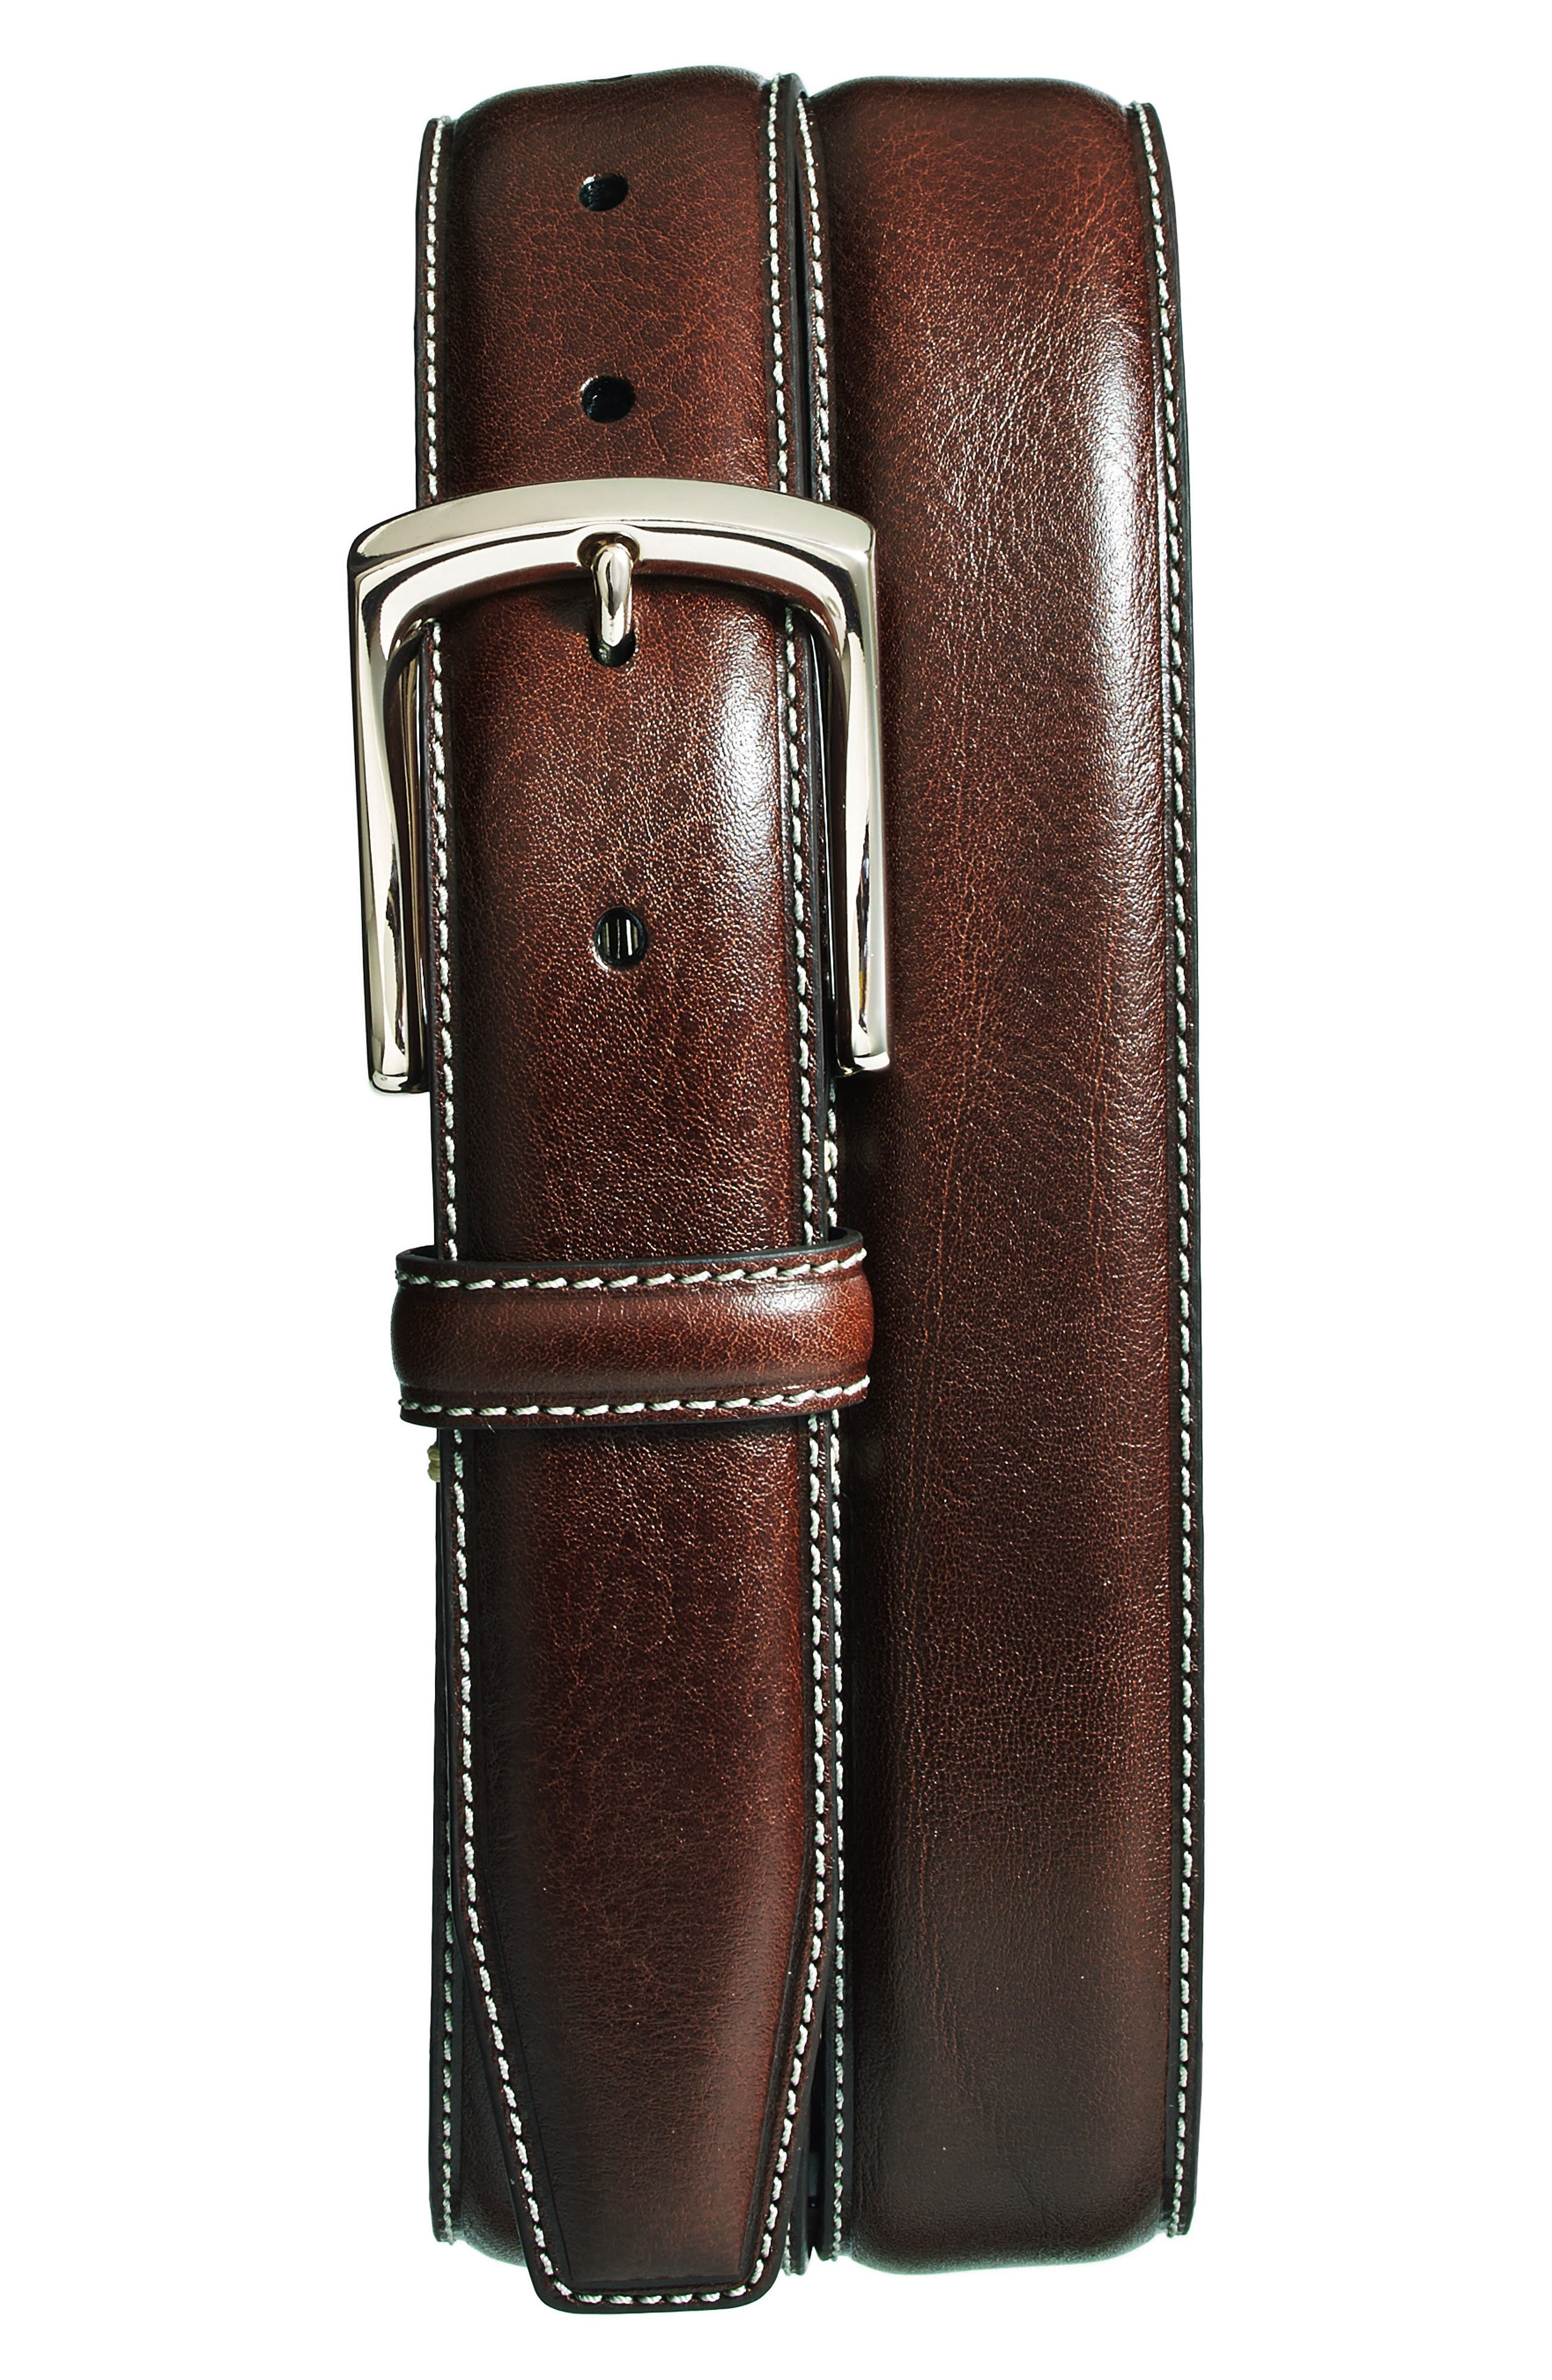 TORINO, Burnished Leather Belt, Main thumbnail 1, color, BROWN